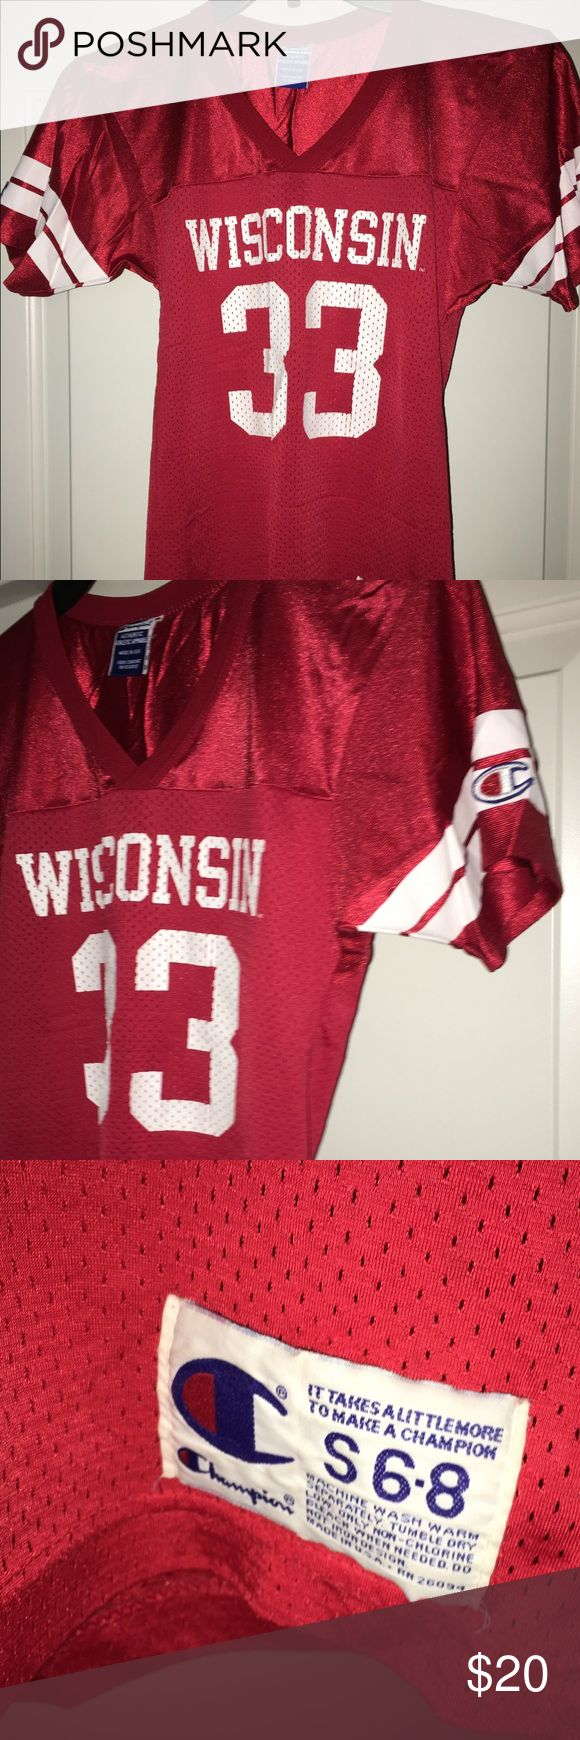 "Youth champion Wisconsin Badgers football jersey S for sale is a kid/youth, vintage, classic, all original, Champion brand, Wisconsin Badgers, red and white short sleeve football jersey.  Sz: S 6-8 Item is in good condition with no rips or stains. There is some cracking in the numbers on the screen print, but not terrible. Please see photos. If you have any questions please ask.  From under one arm to under the other measures appx 15"" from the top of the shoulder to the bottom of the Jersey…"